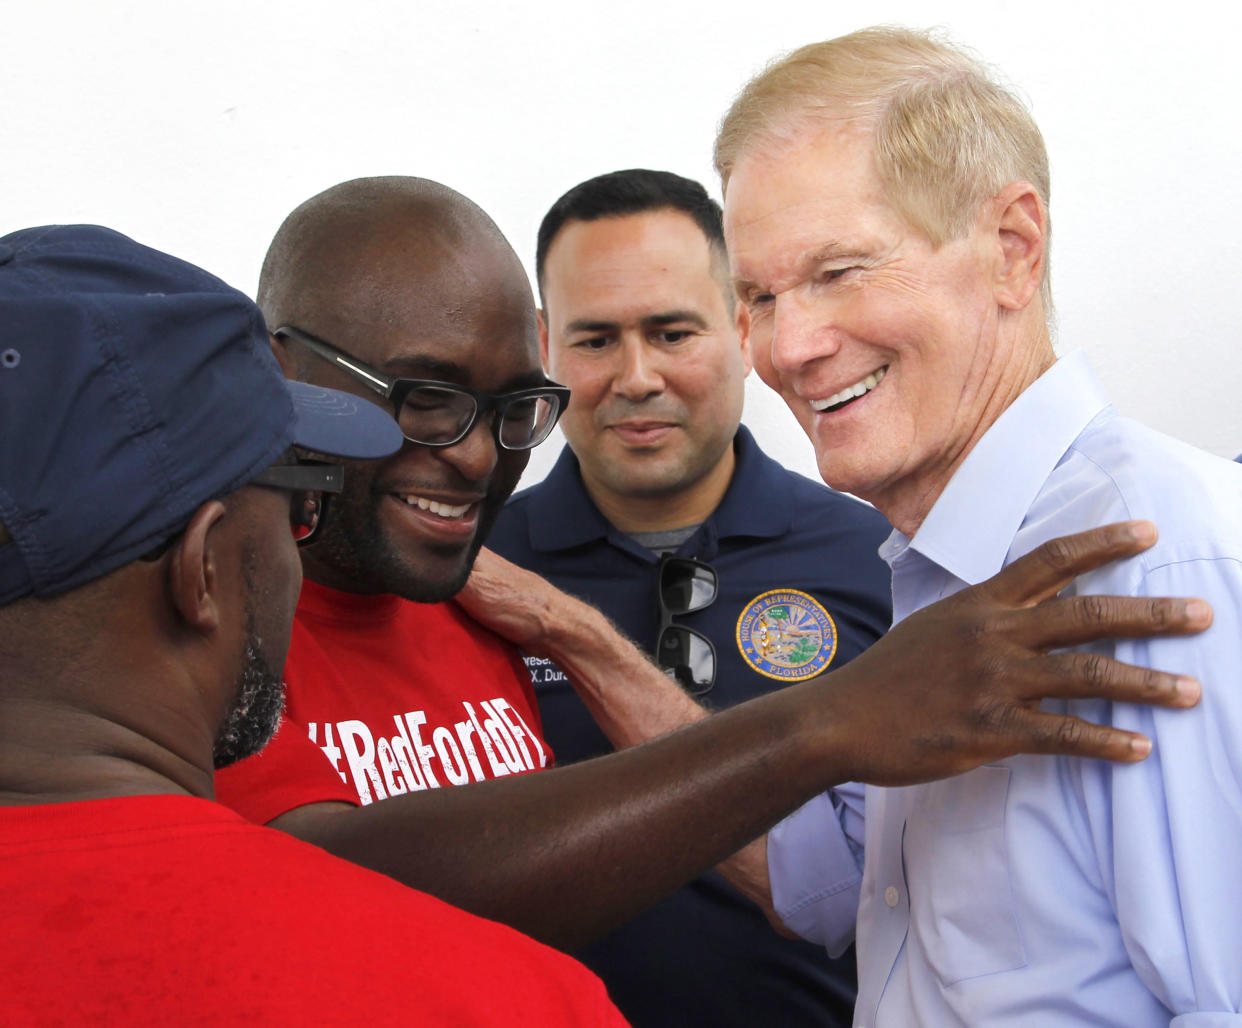 Sen. Bill Nelson, right, is greeted by educators at the Betty Anderson Rec Center in Miami Gardens, Fla., in August. (Photo: Carl Juste/Miami Herald/TNS via Getty Images)